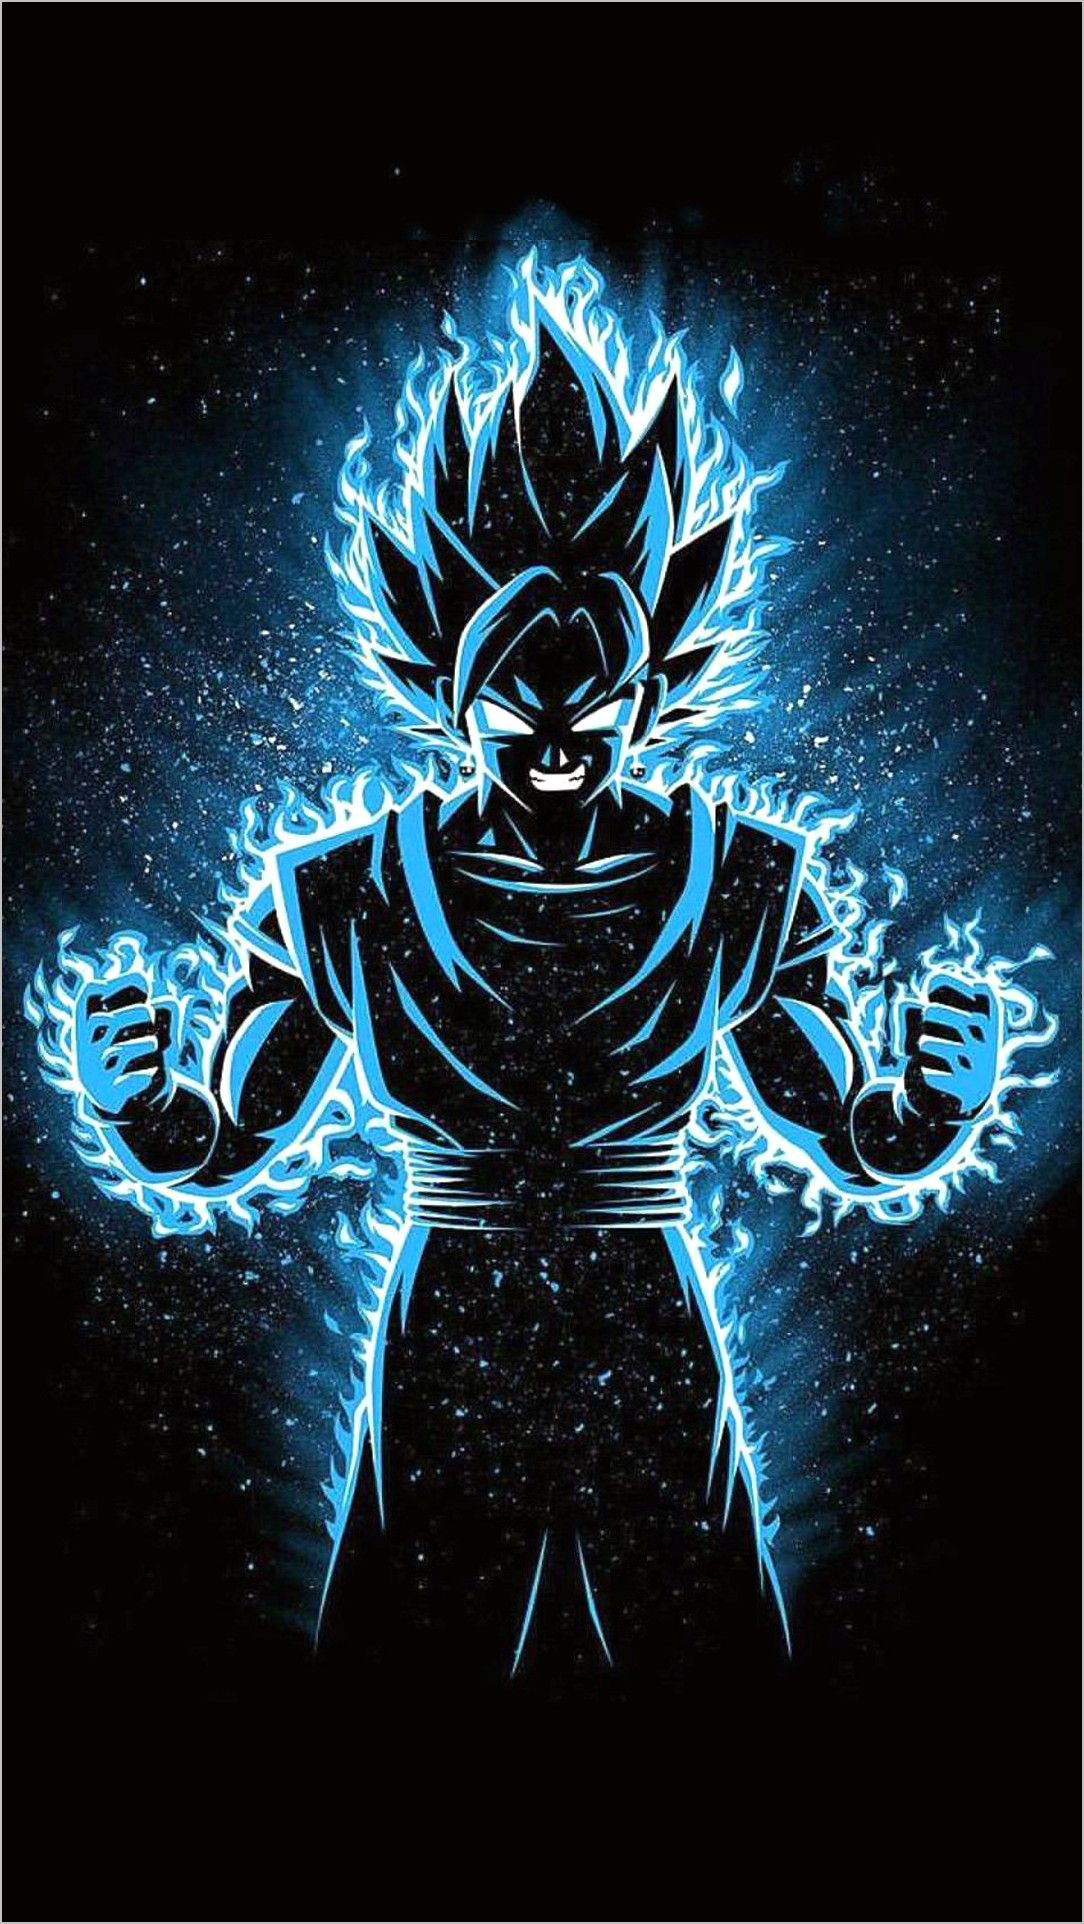 Goku Super Saiyen Dragon Ball Super Manga Dragon Ball Goku Anime Dragon Ball Super